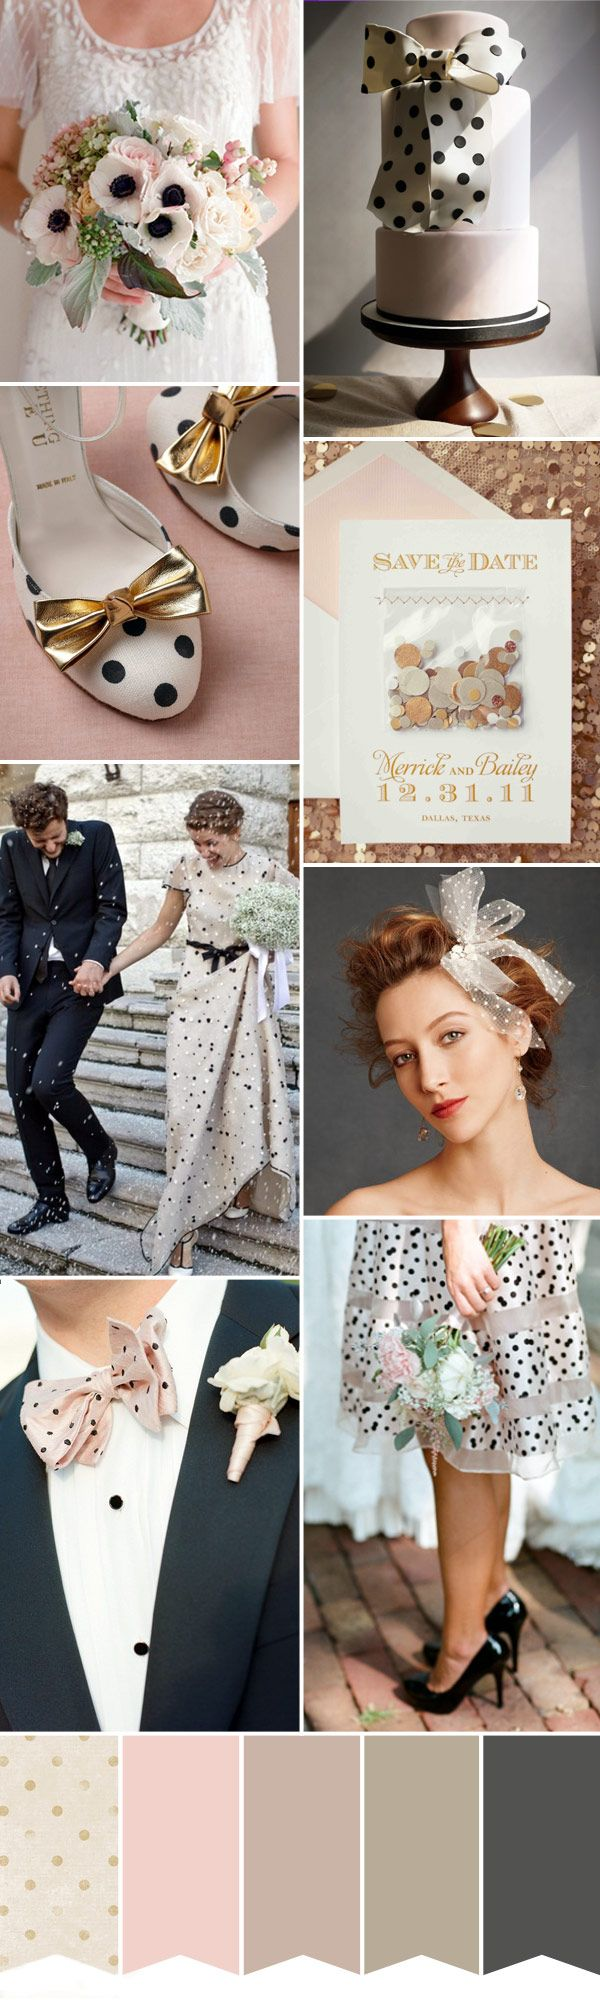 Inspired by a Polka Dot Wedding – Blush, Gold and Grey Palette